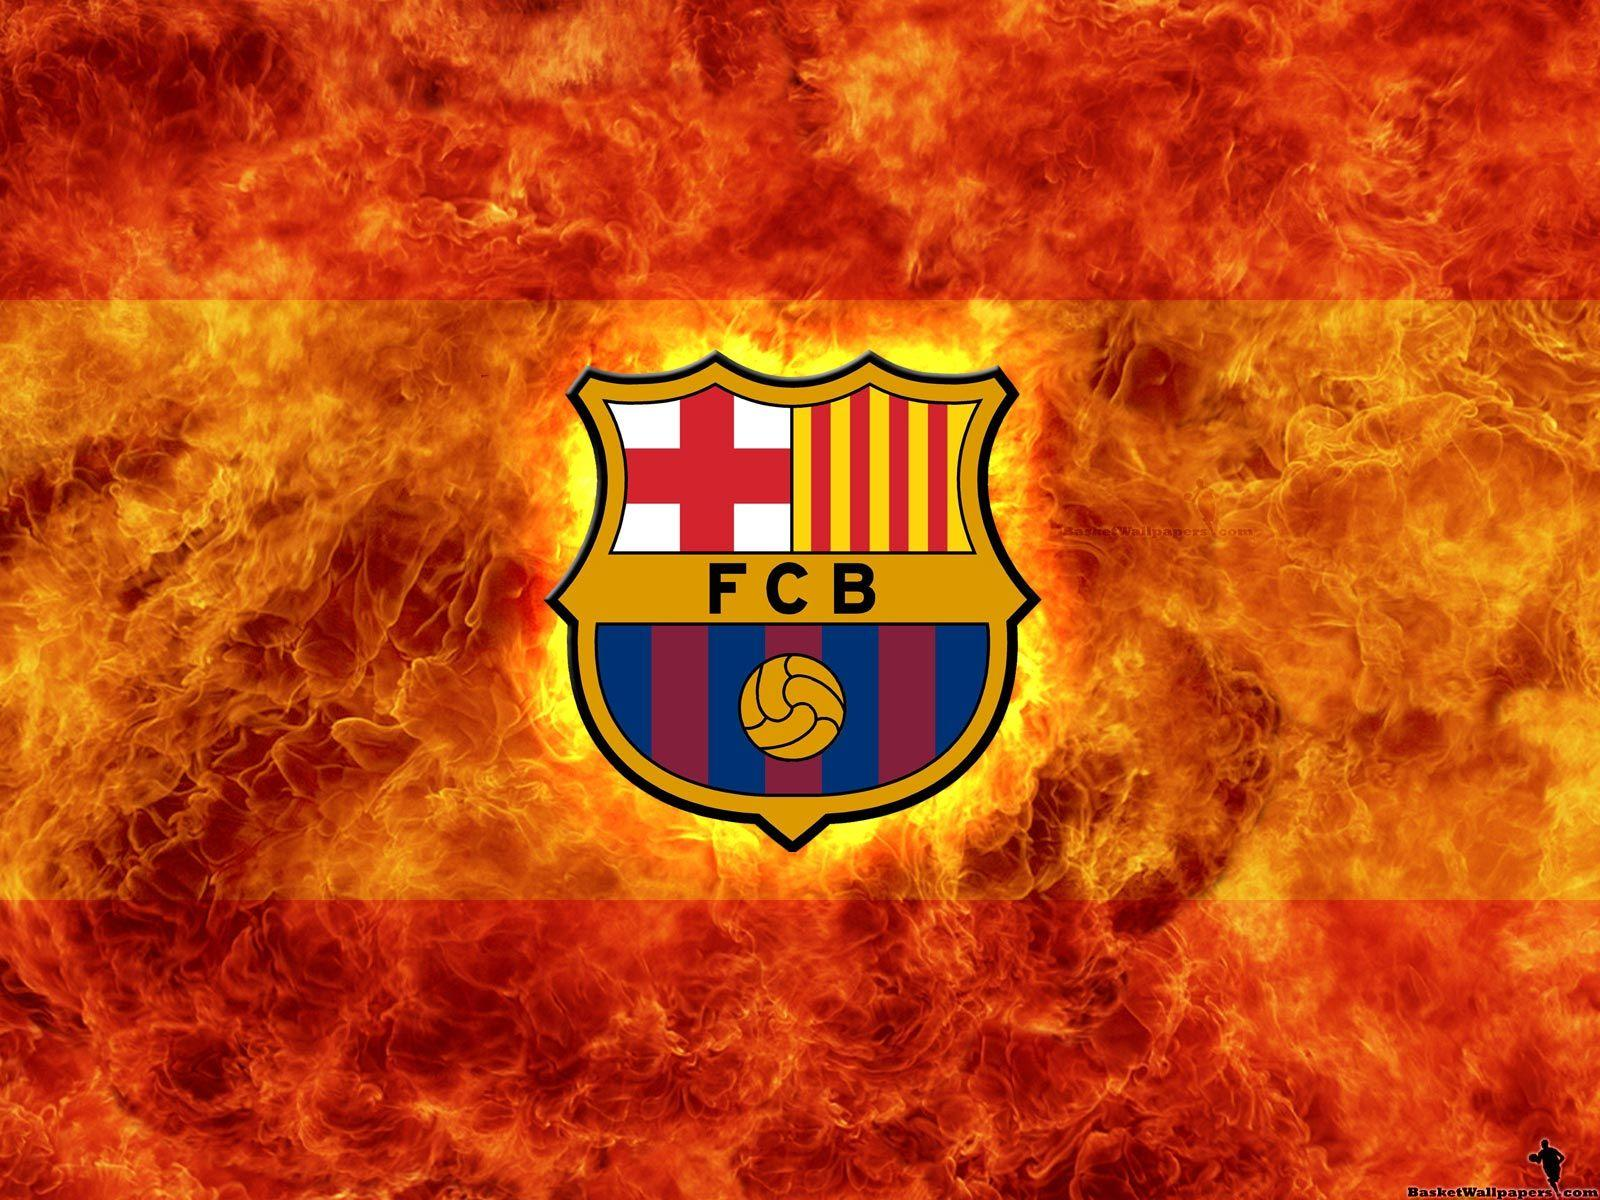 AXA FC Barcelona Wallpapers at BasketWallpapers.